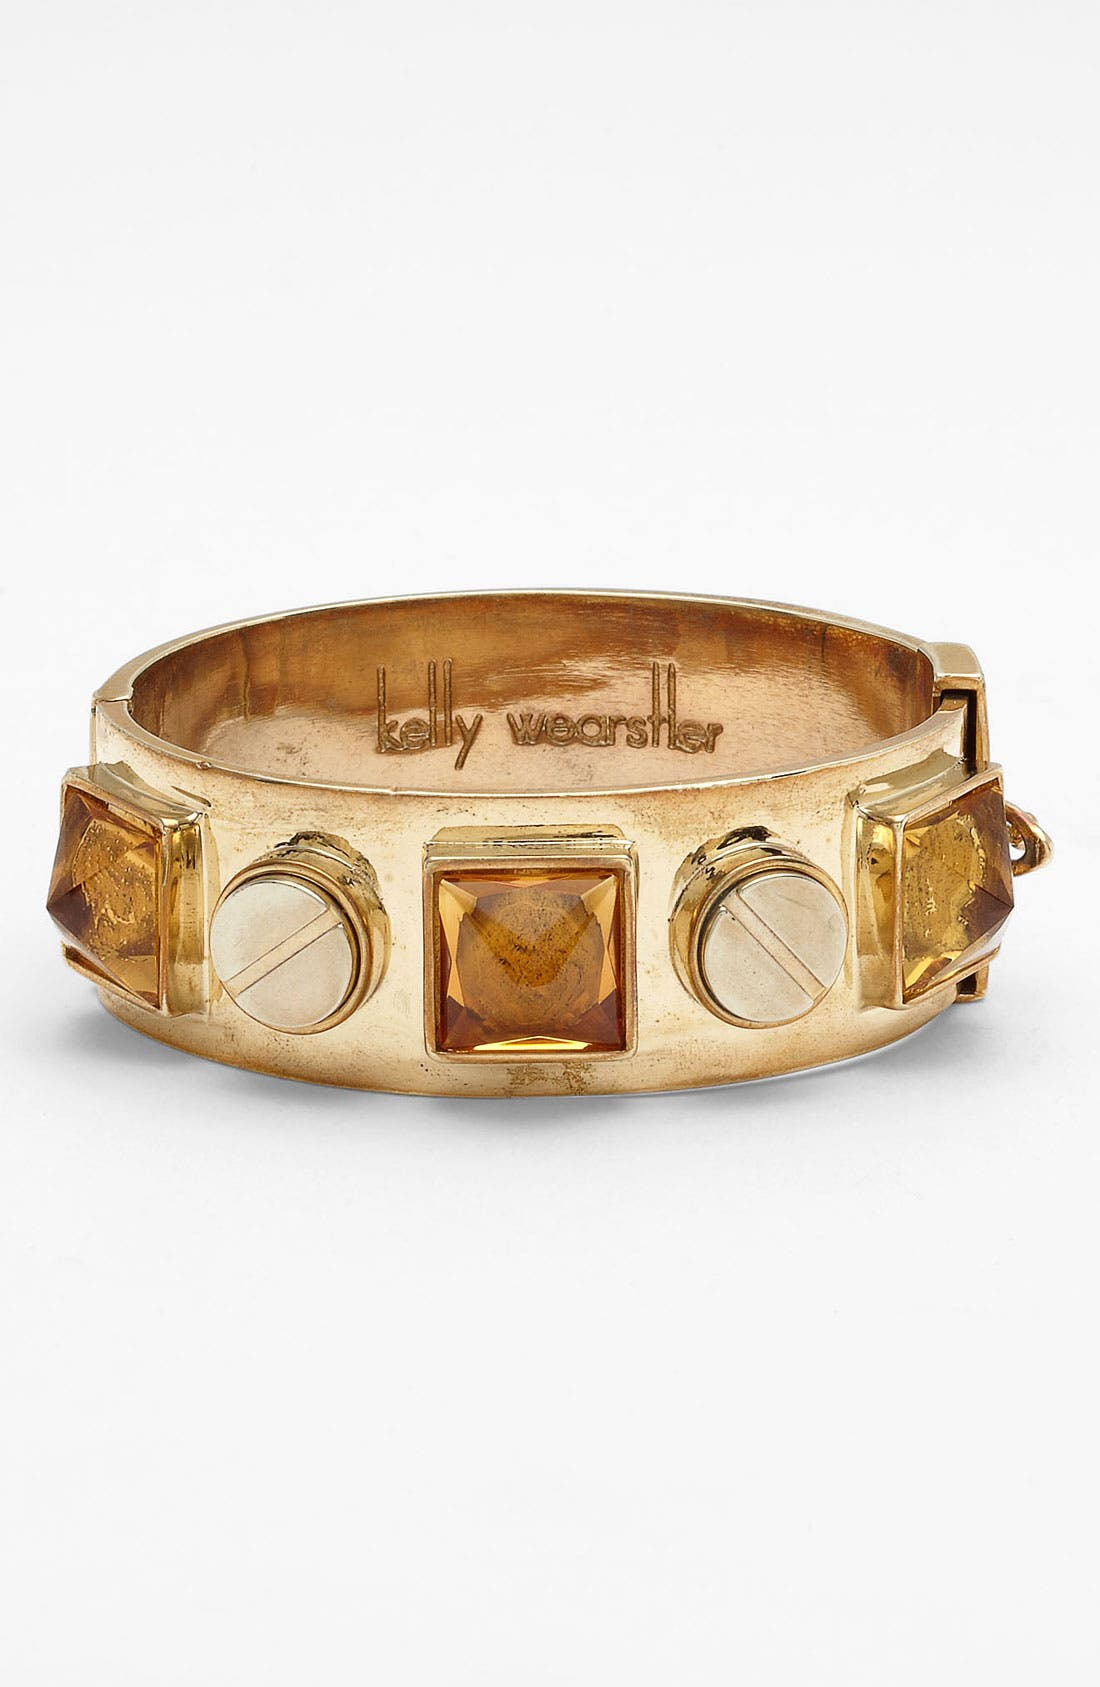 Main Image - Kelly Wearstler Screw & Faceted Stone Bangle